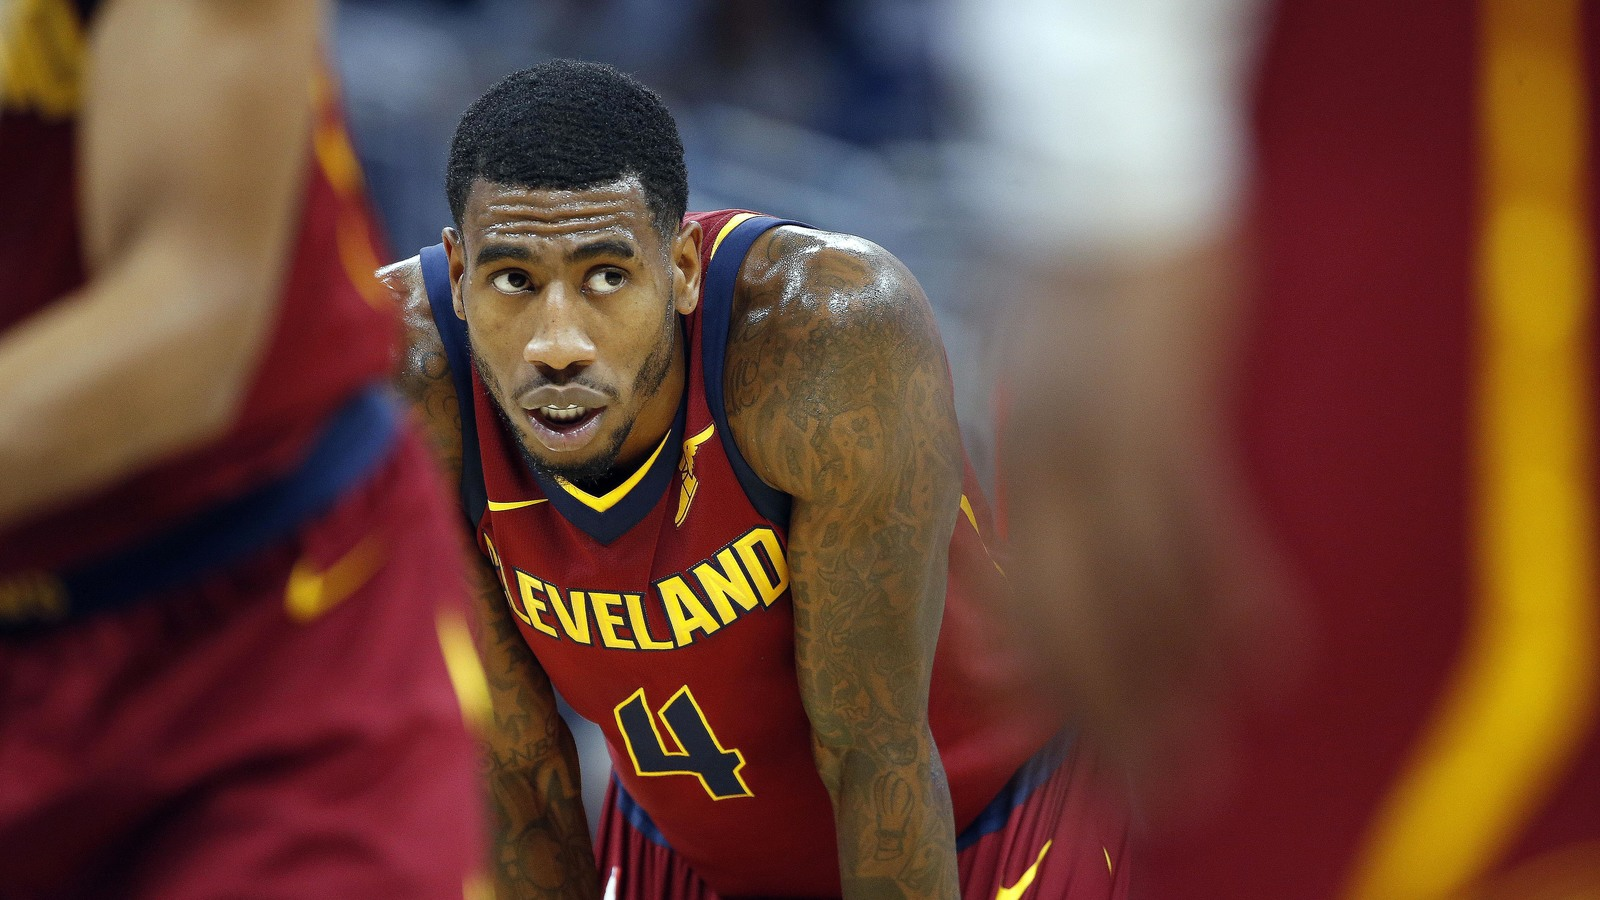 Report shumpert s contract stopped cavs from landing for Knights landing fishing report